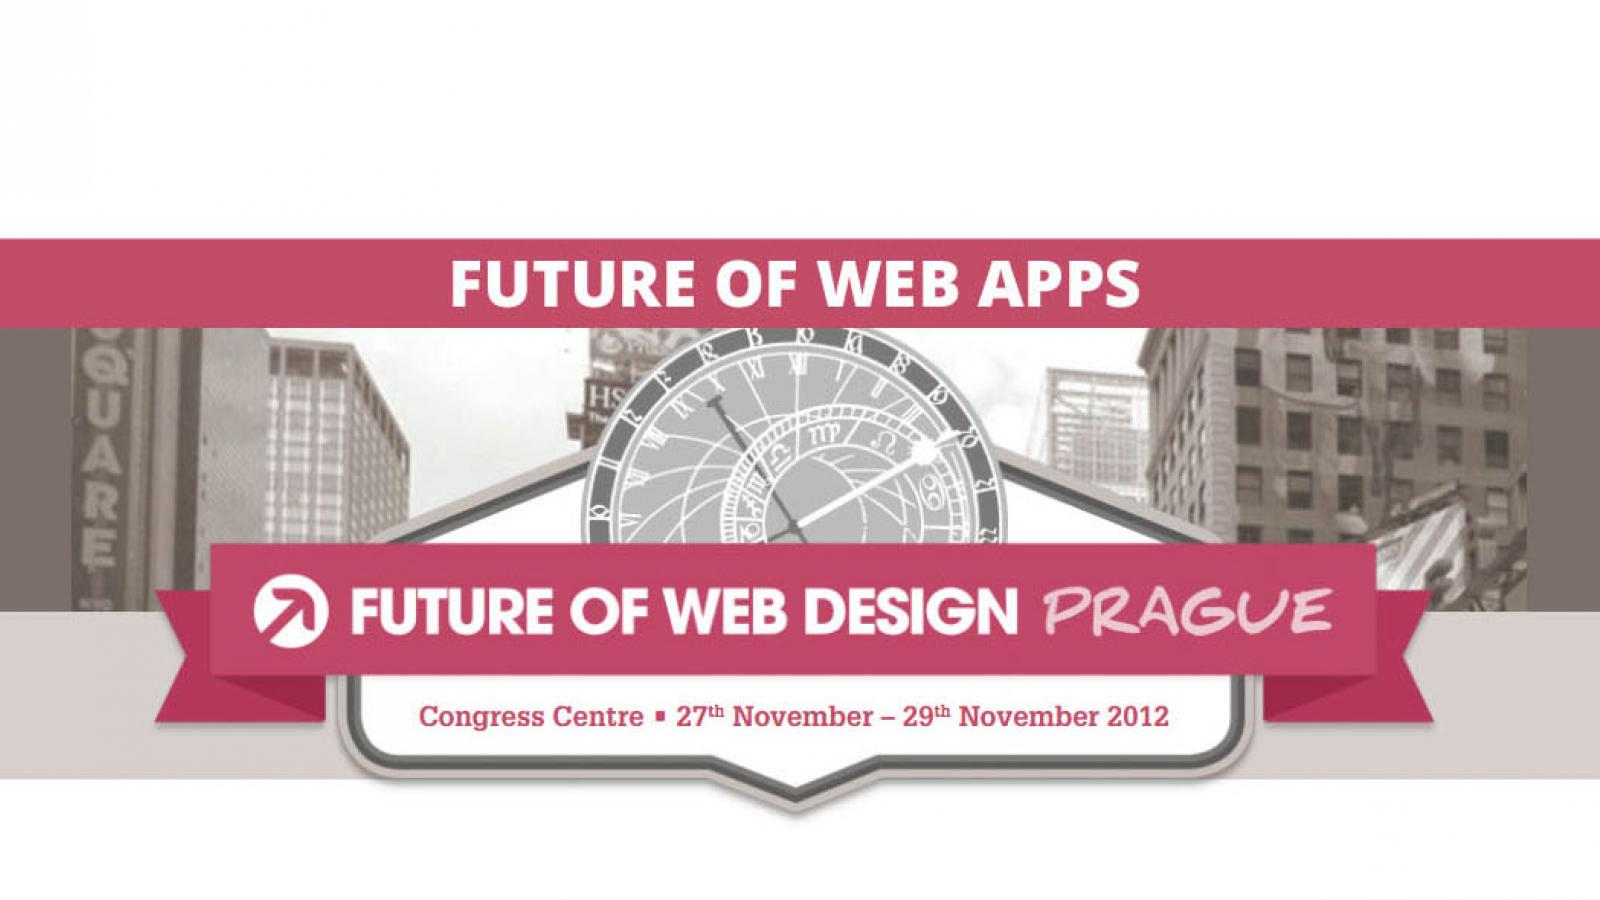 Event: Future of Web Apps & Design in Prague